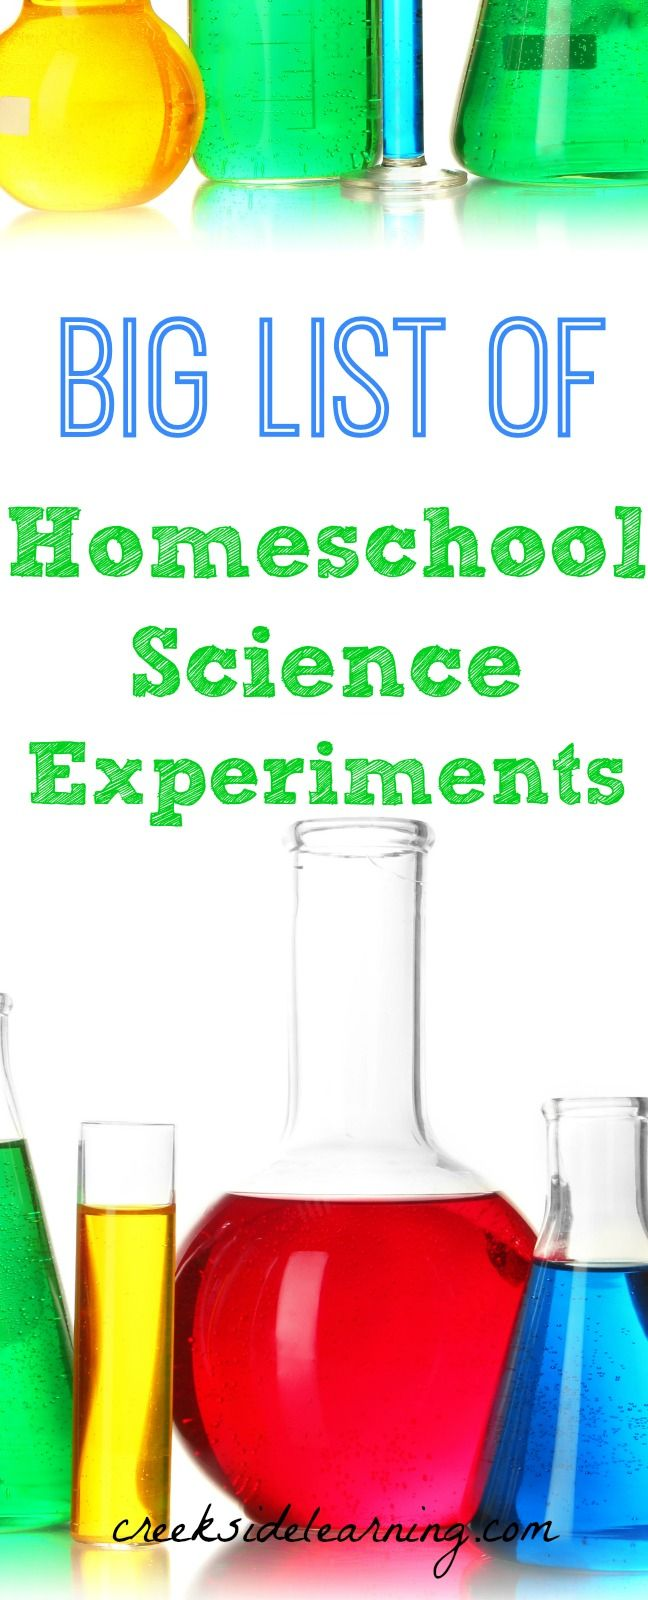 Homeschool Science Experiments from Astronomy to Zoology and everything in between: Force and Motion, Chemistry, Nature Study, Science Equipment, Holiday/Season science themes and more.